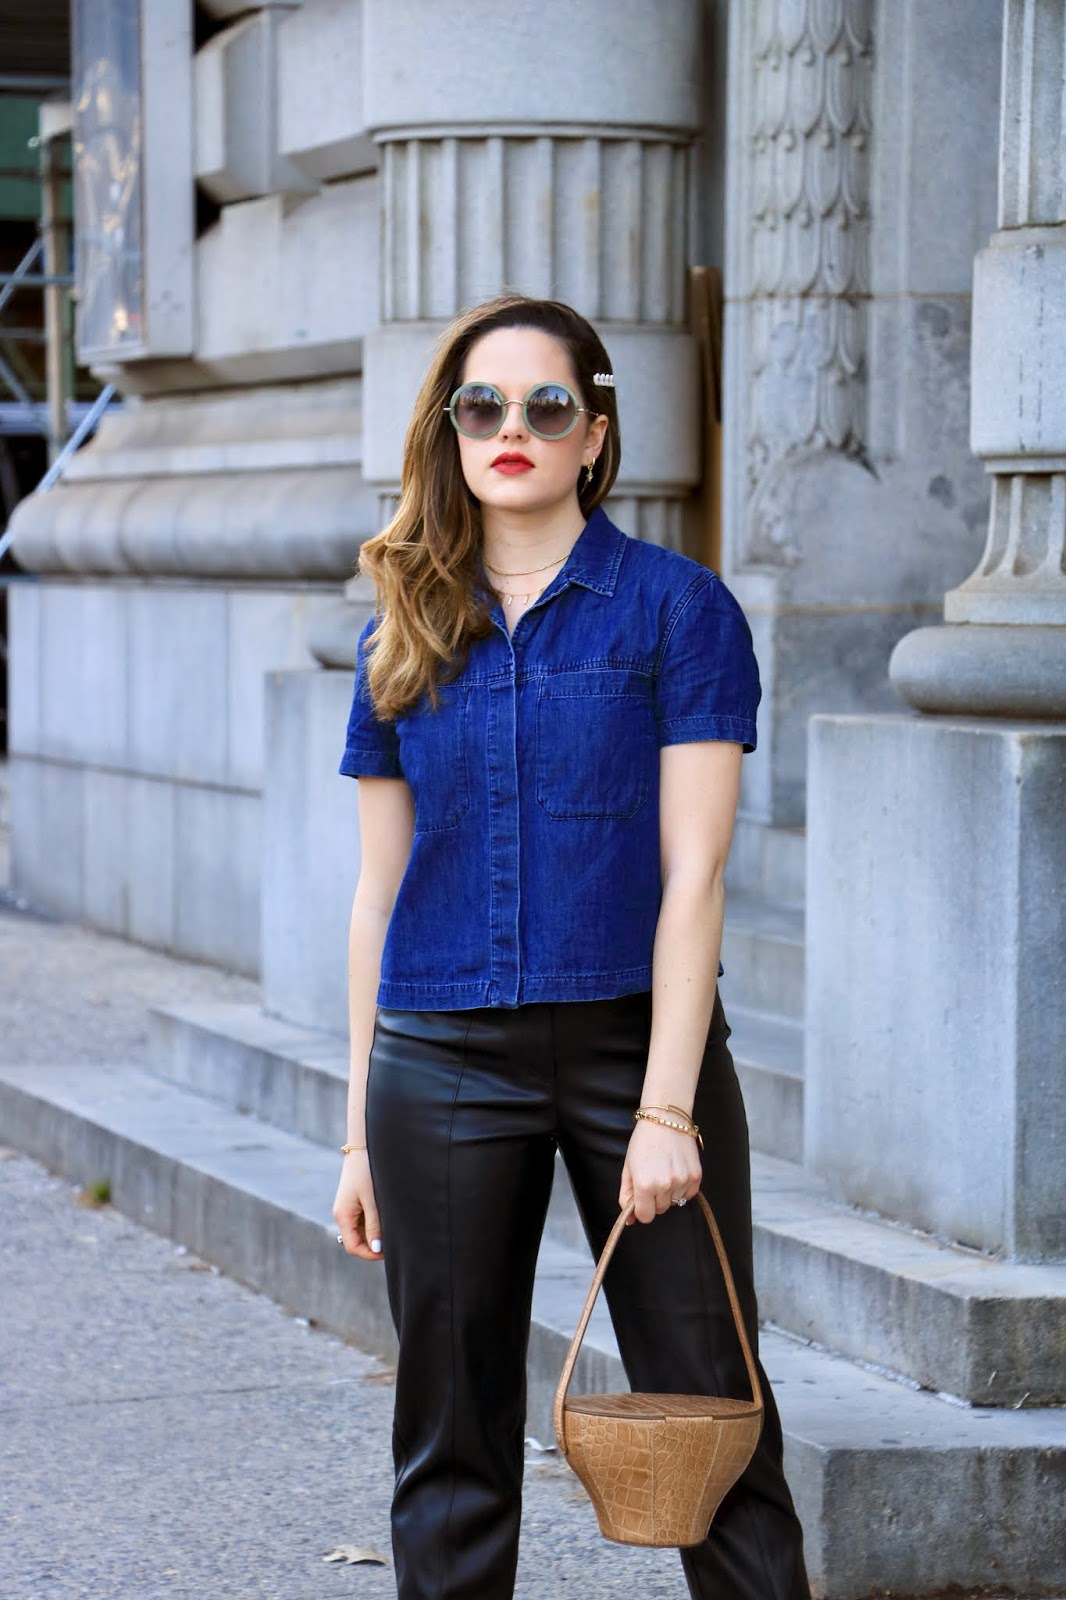 Nyc fashion blogger Kathleen Harper wearing a cropped chambray button-down by Rag and Bone.